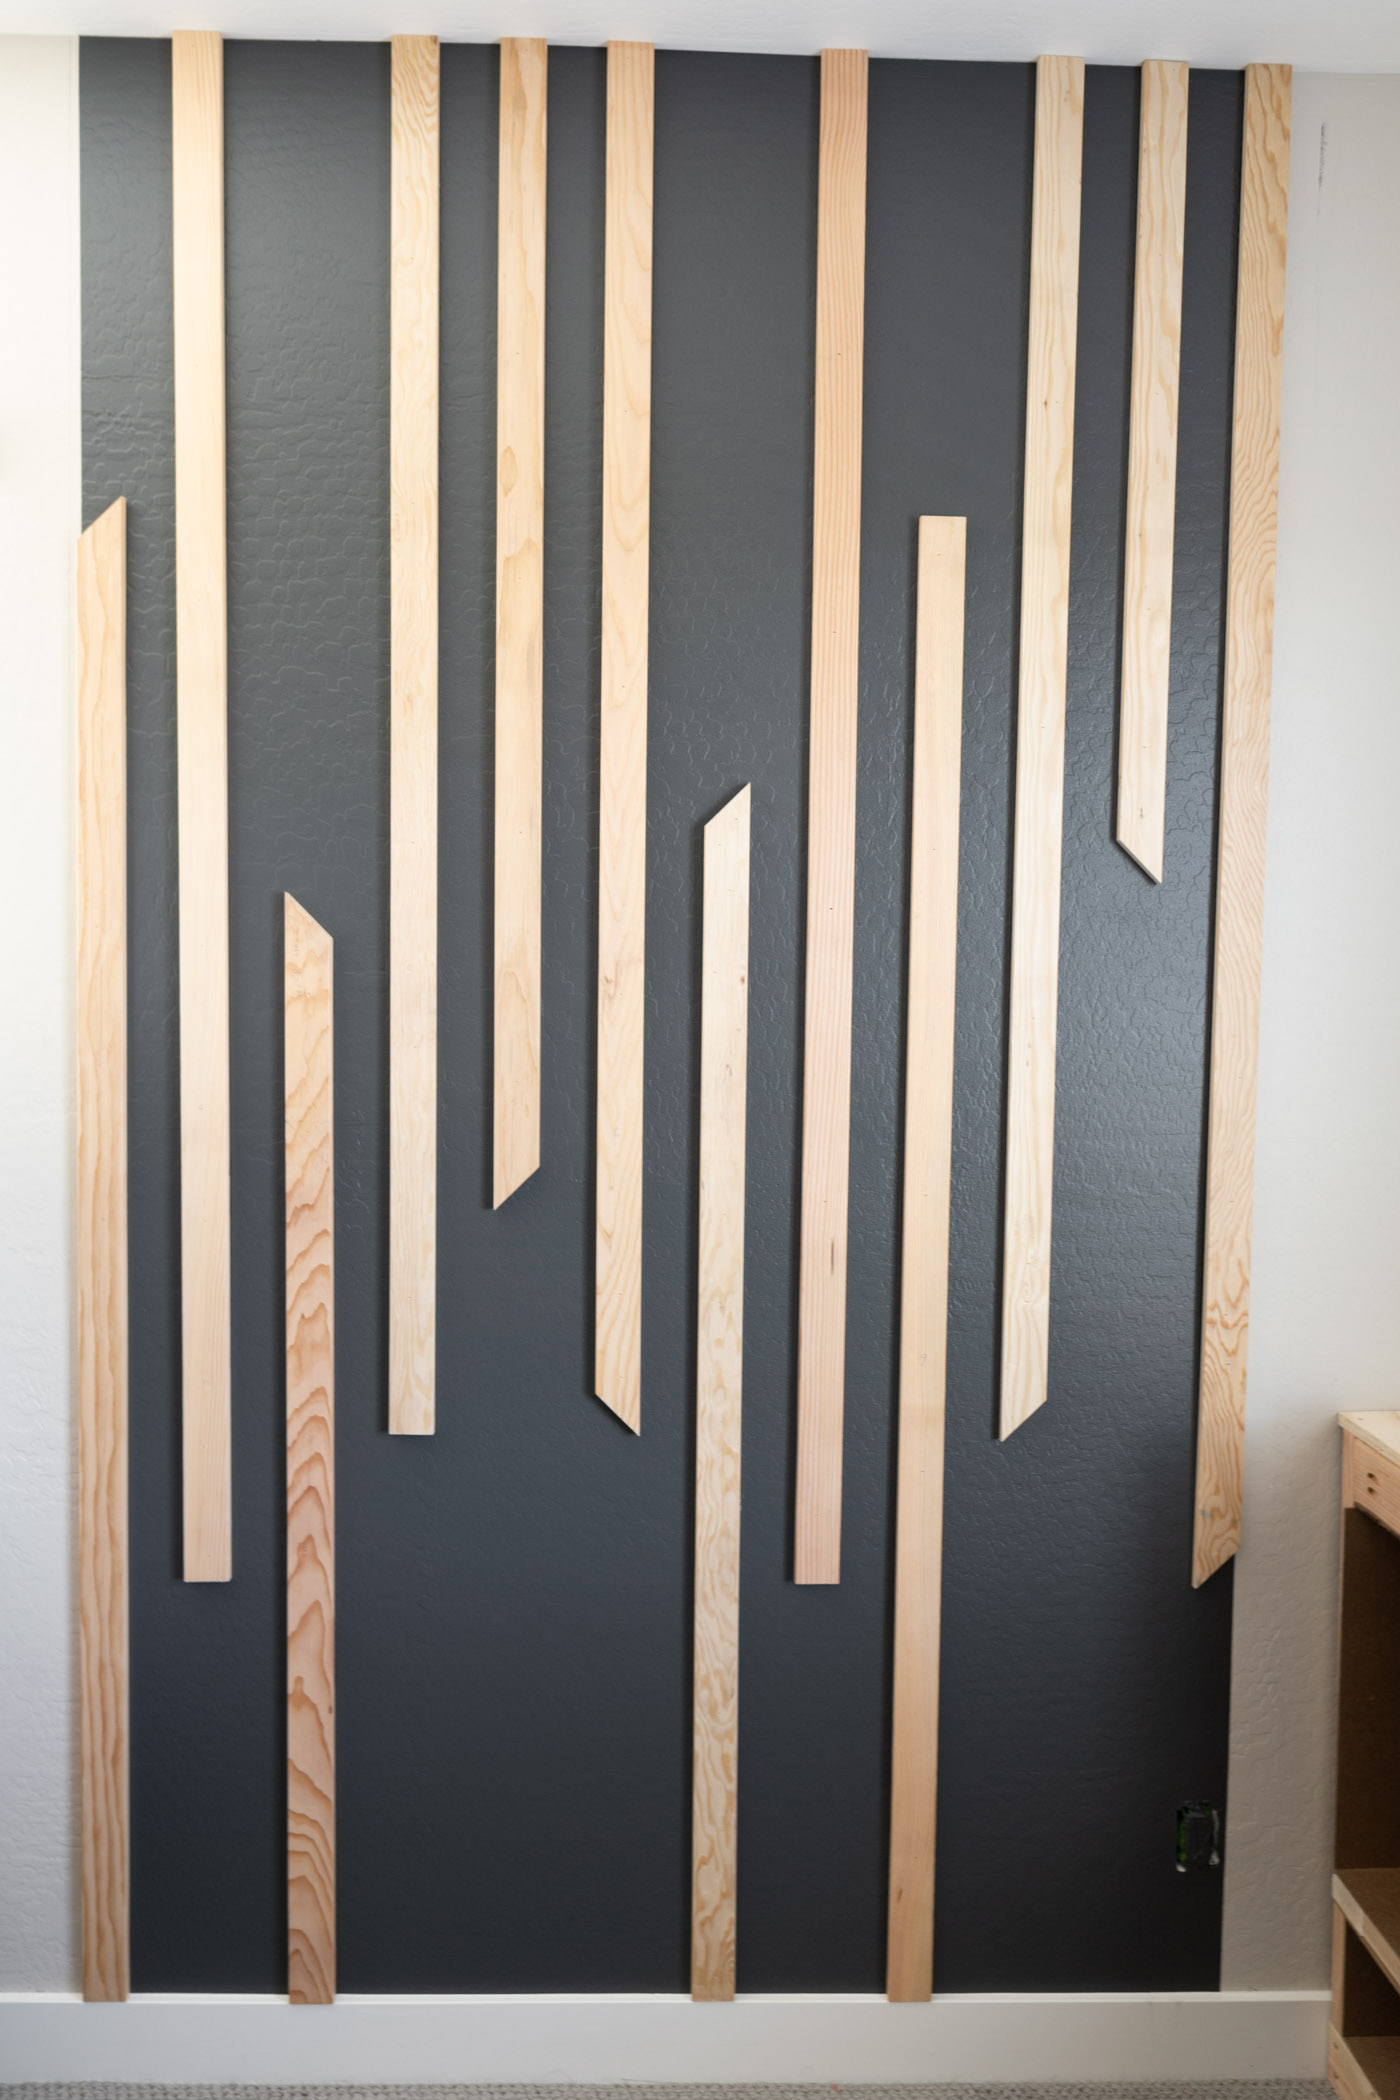 12 Wood board are installed 3 inches apart to create the DIY slat wall.